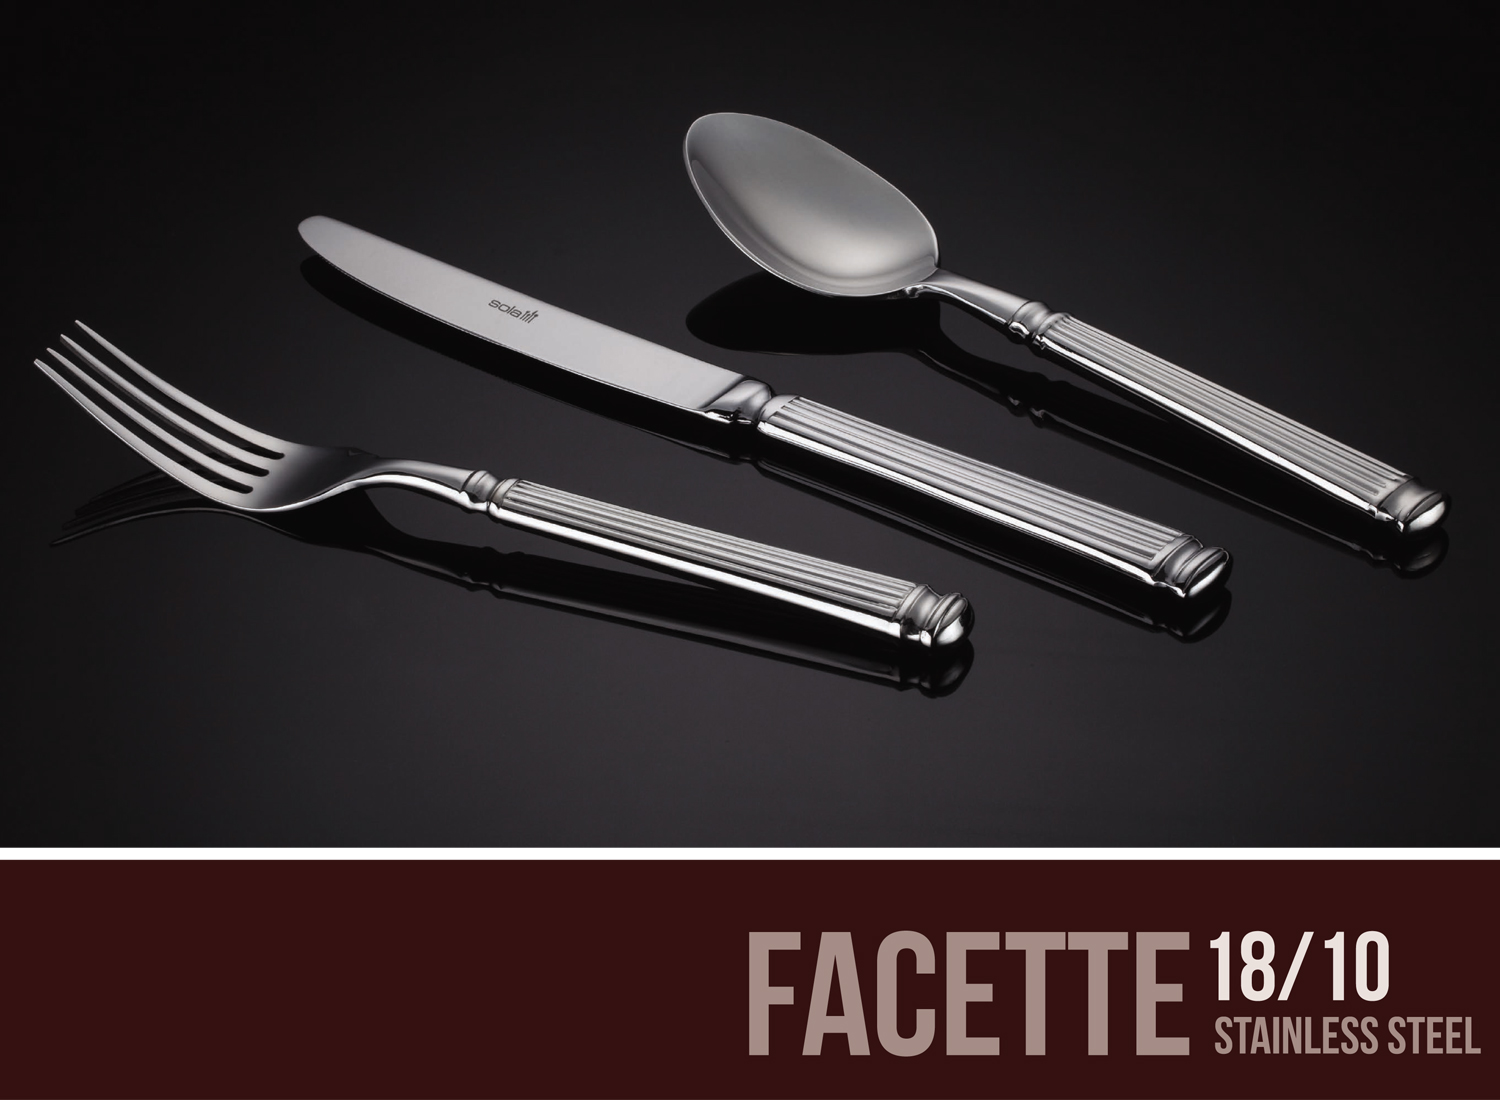 Facette Stainless Steel